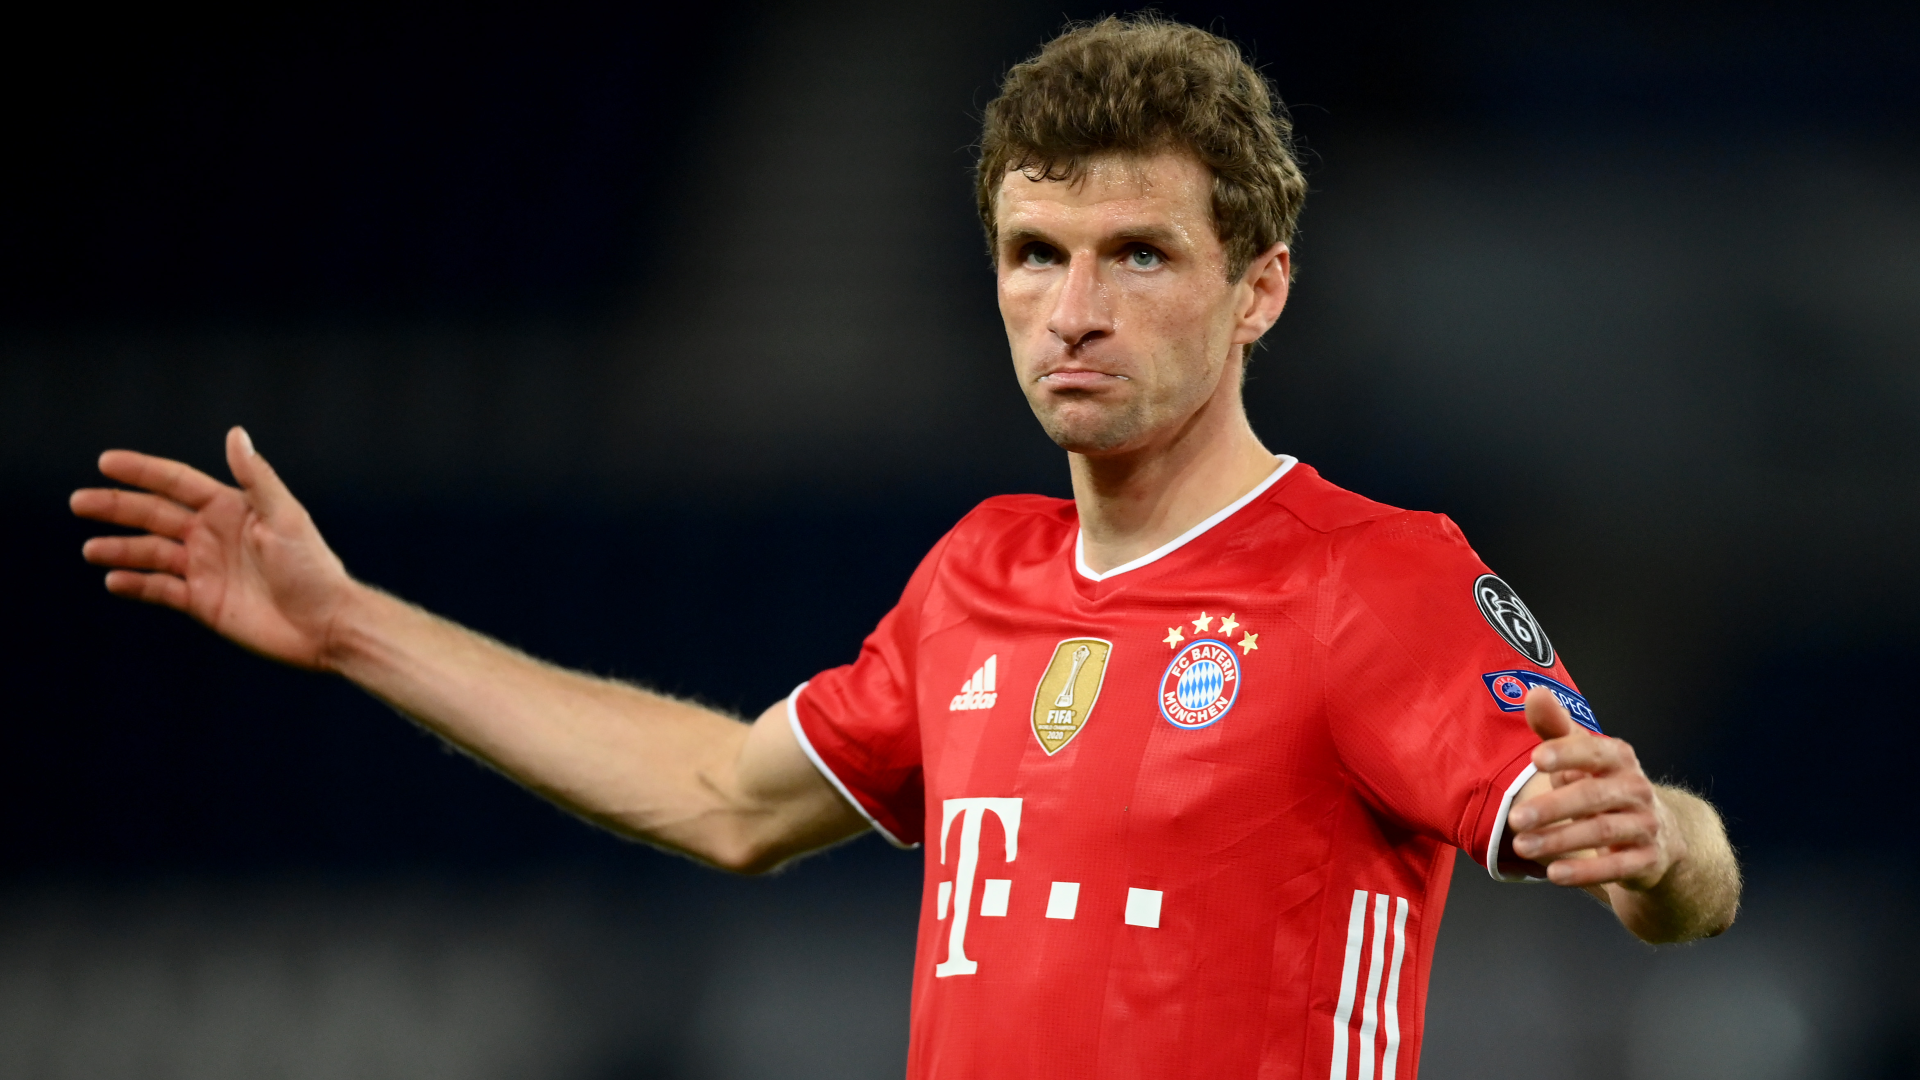 Muller and Neuer lament Bayern's Champions League exit: It's very disappointing